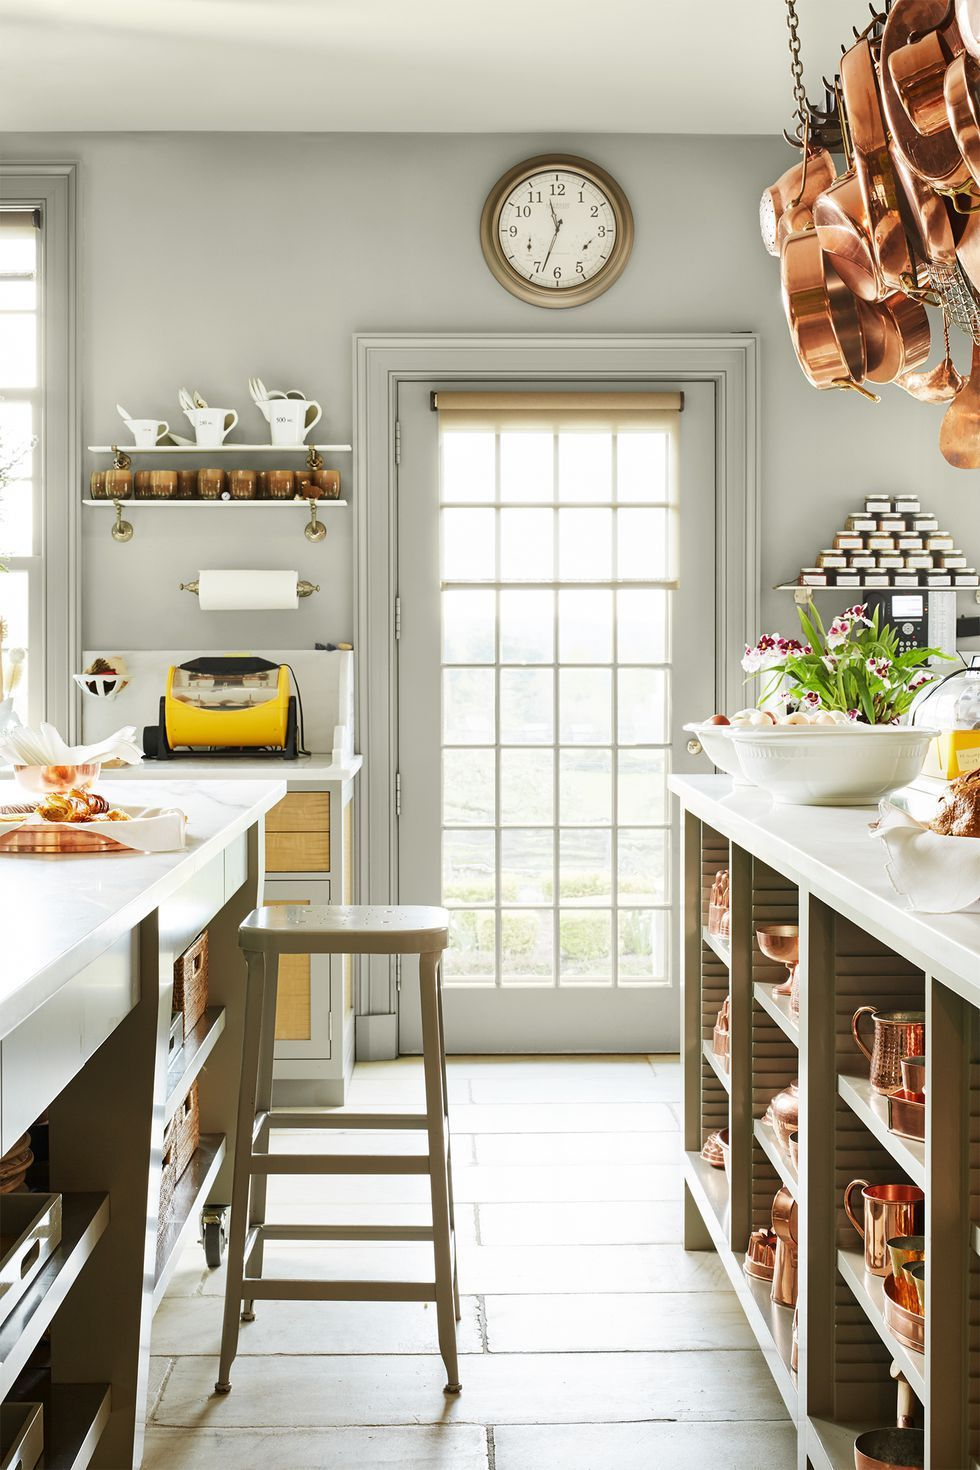 32 Kitchen Trends for 2020 That We Predict Will Be ...